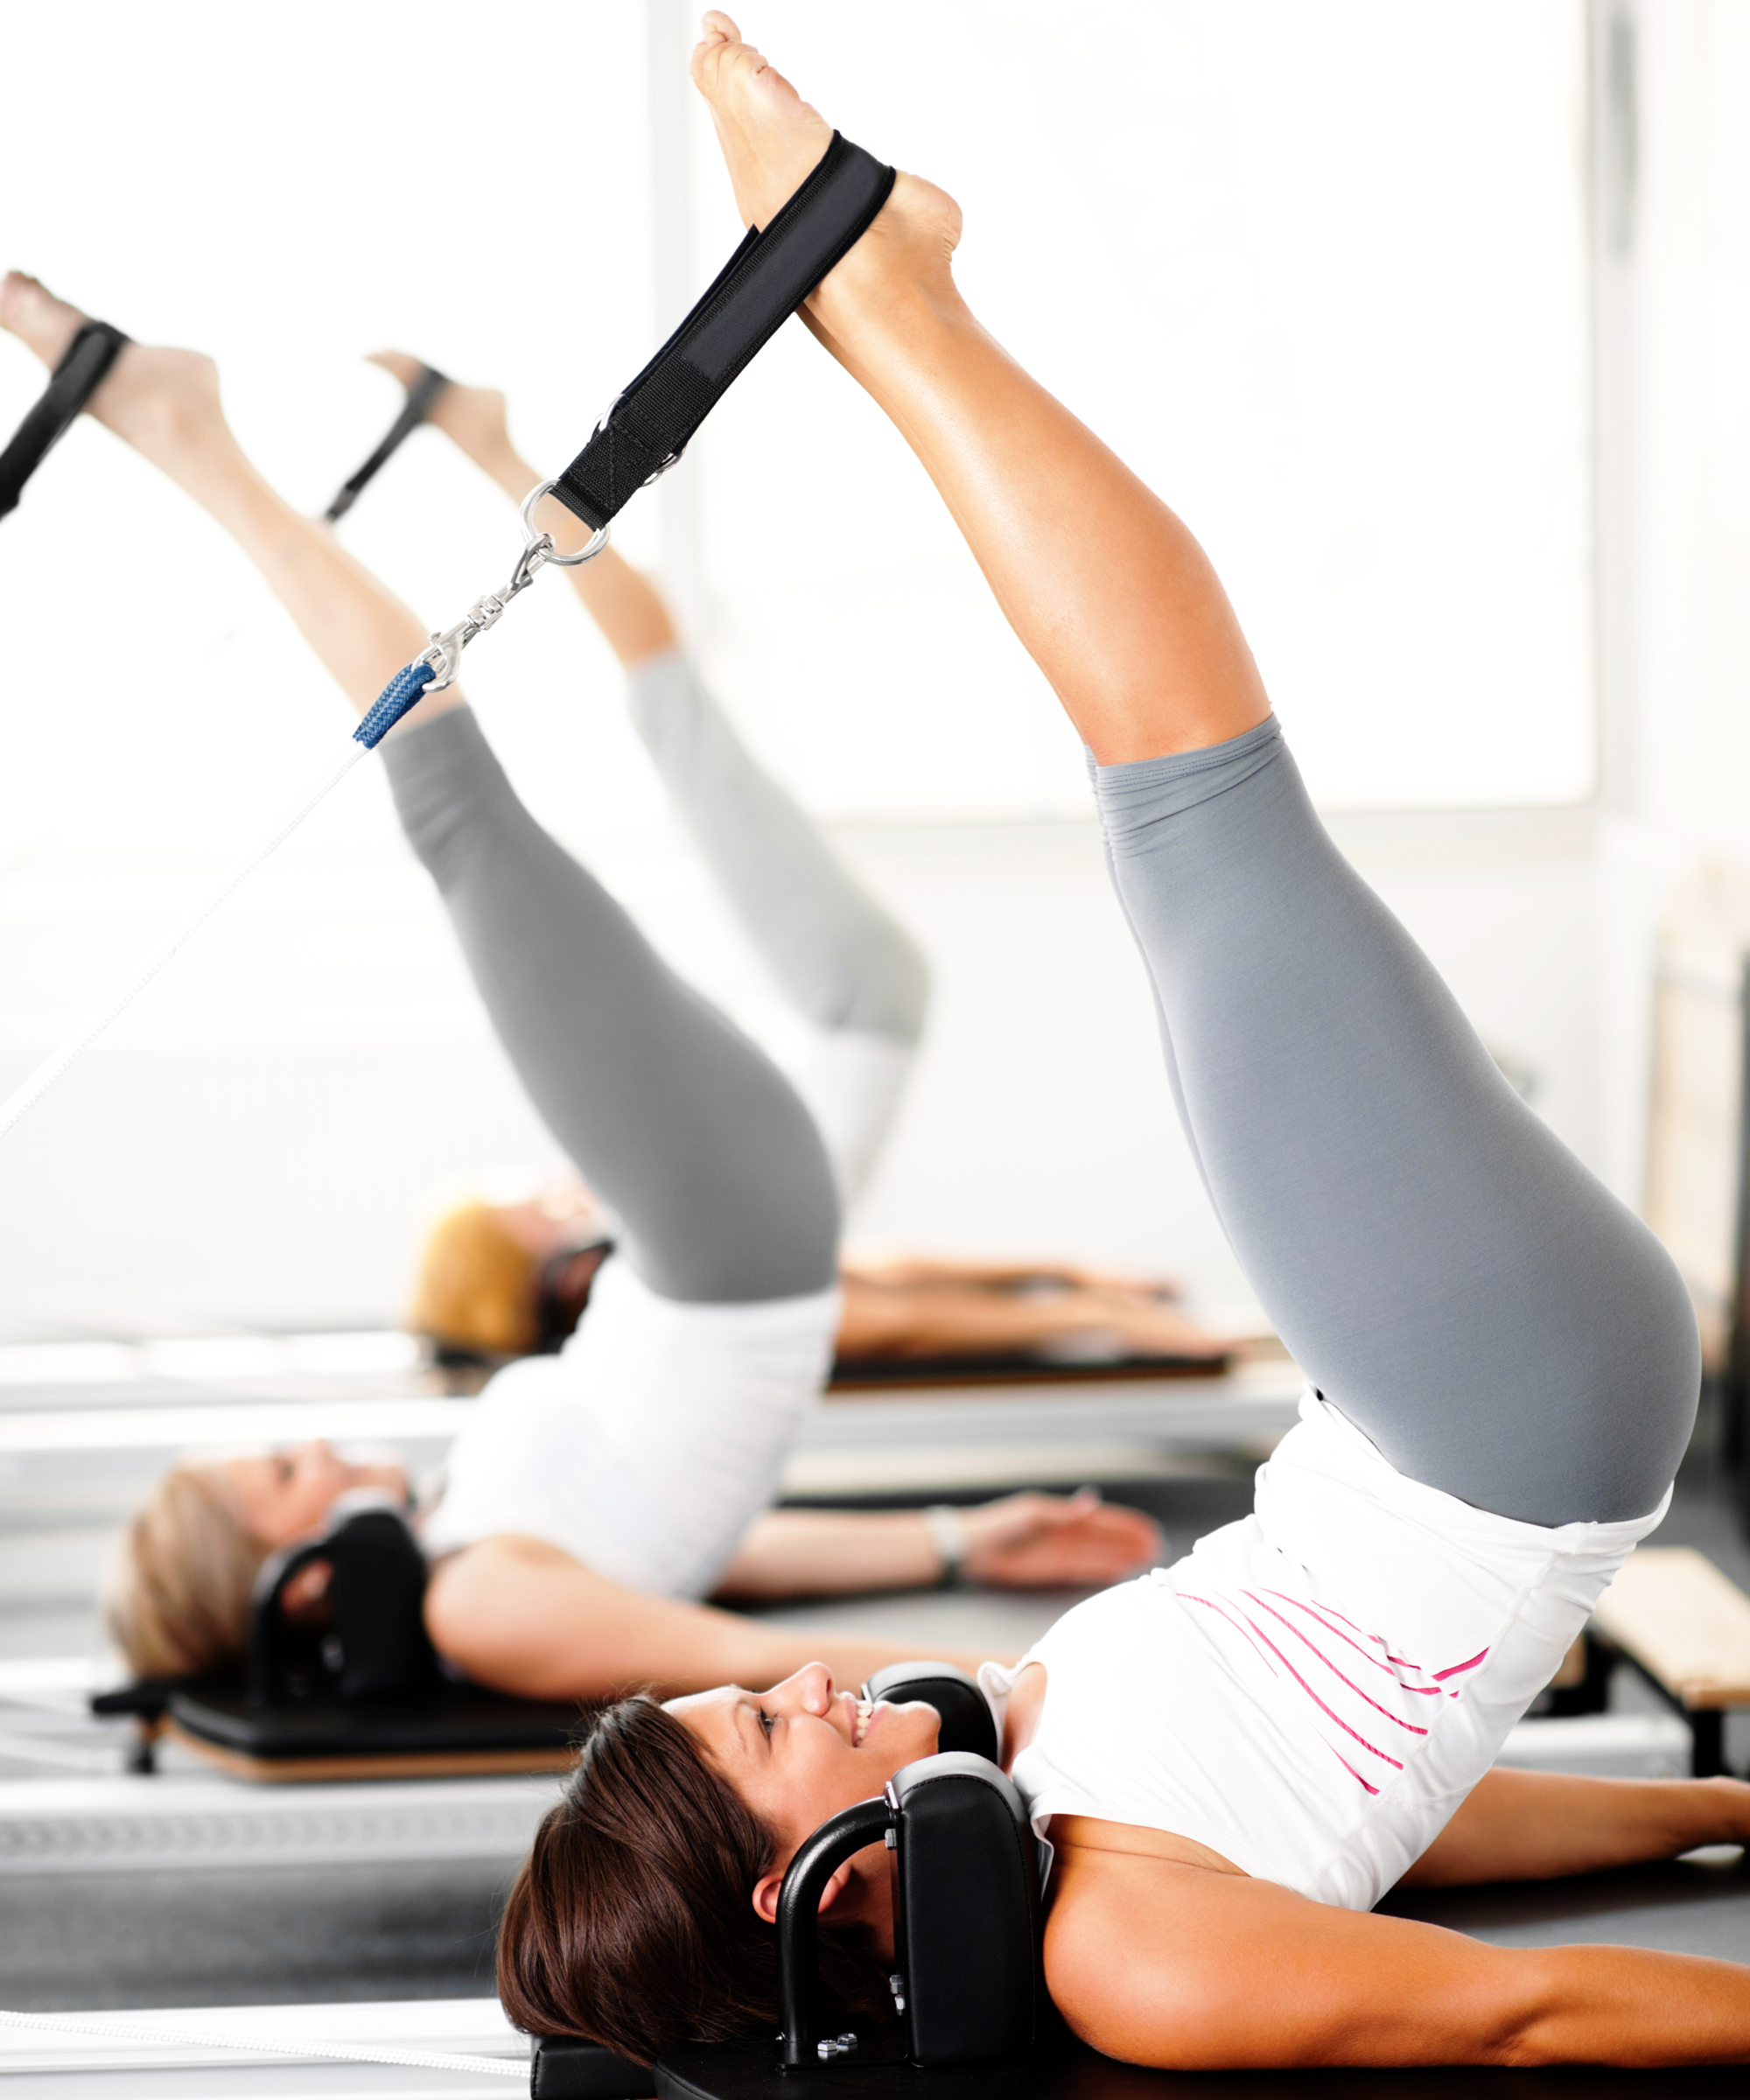 How To Use Pilate Reformer Workout Machine For Exercise